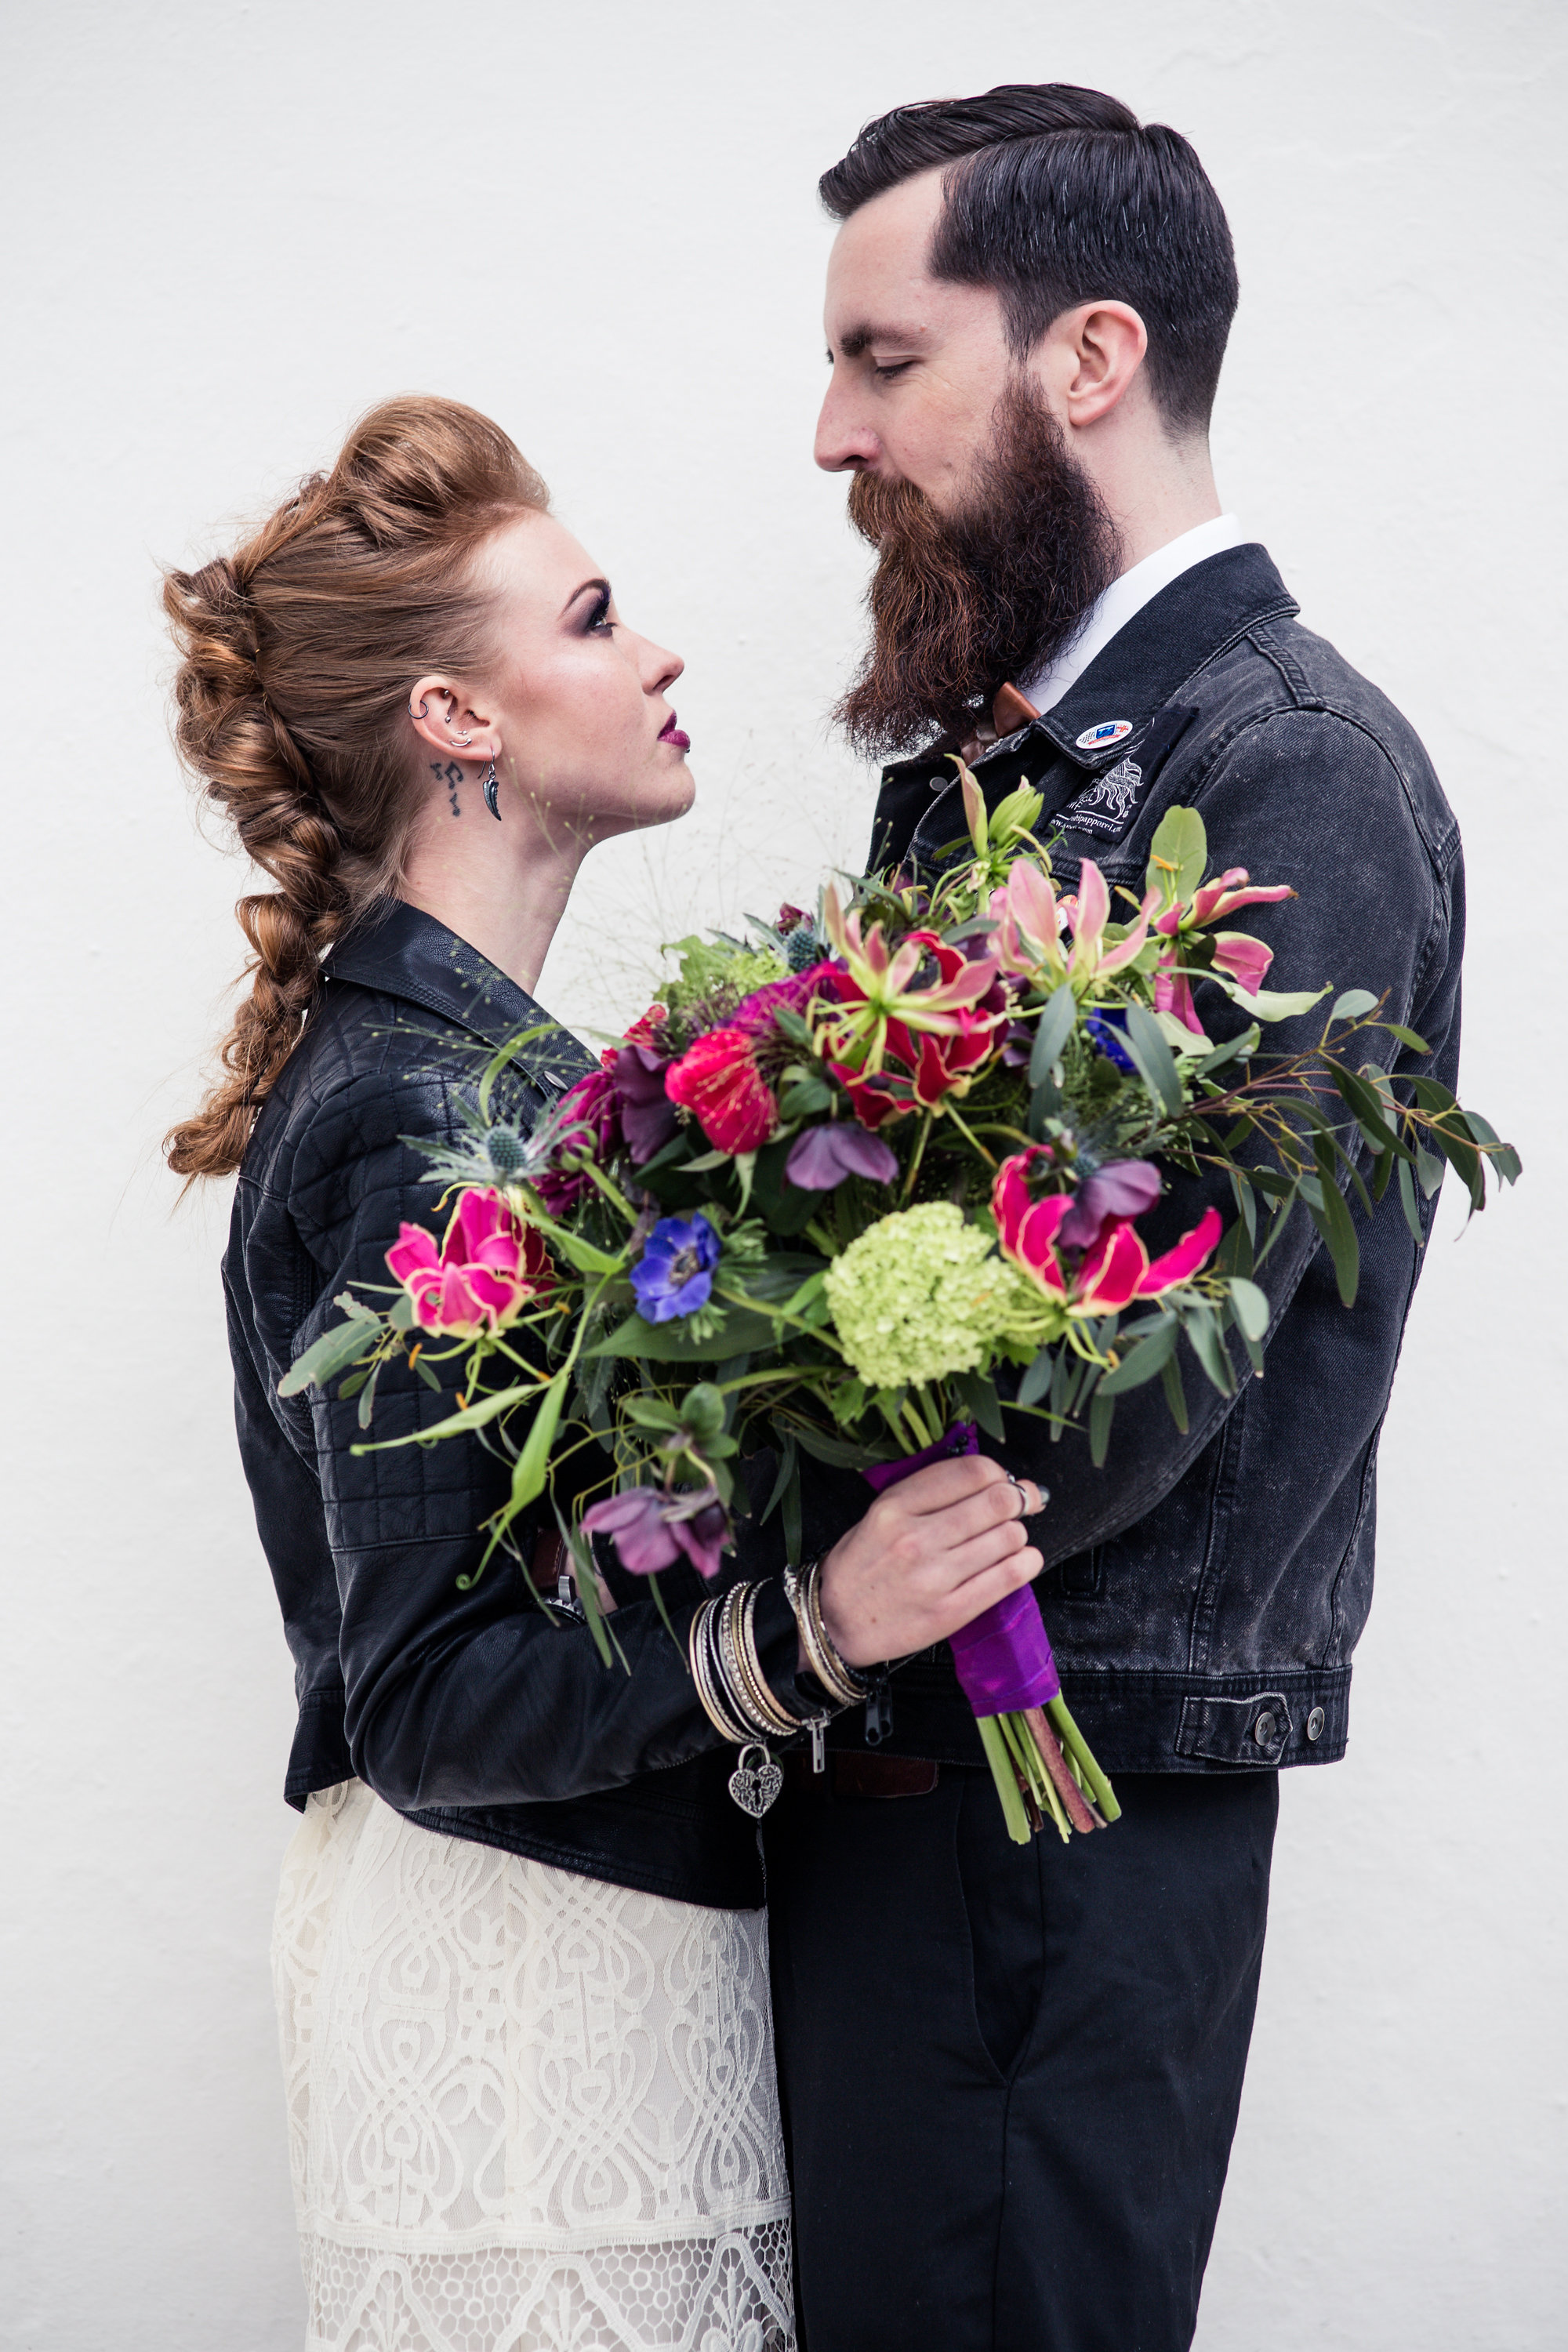 Photography: Jewell | Styling: Christine at Rock Hard Nails | Make Up: Kim Berridge | Hair: Victoria Wollin & Ben Drewry | Jewellery: ElementIsle | Flowers: Heidi at The Flower Studio | Models: Sophia Russell & Tony Weir